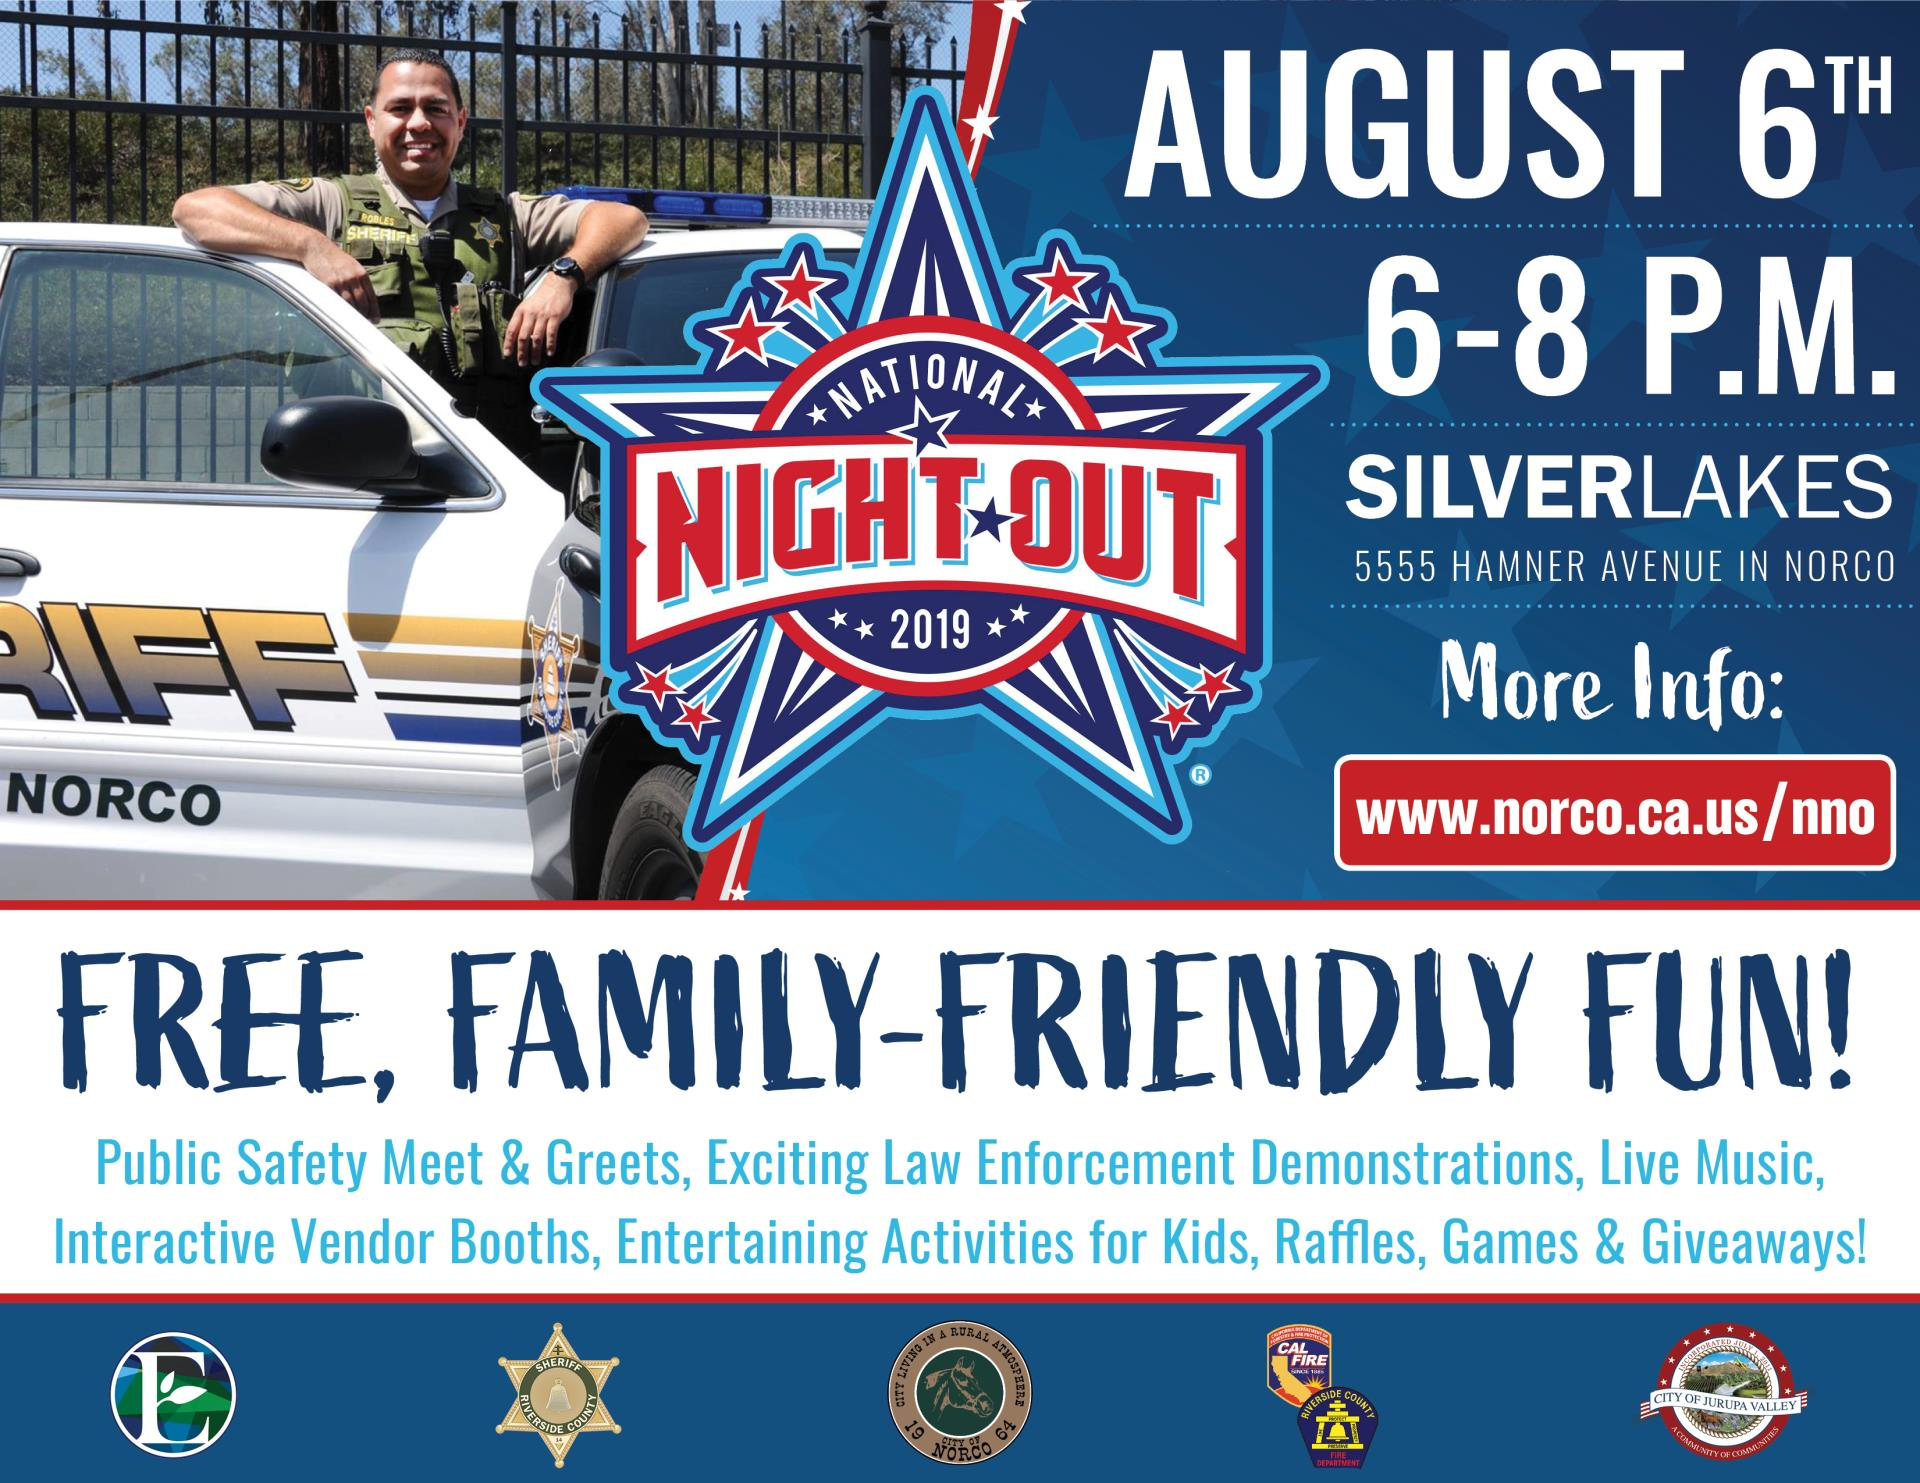 2019 National Night out Flyer